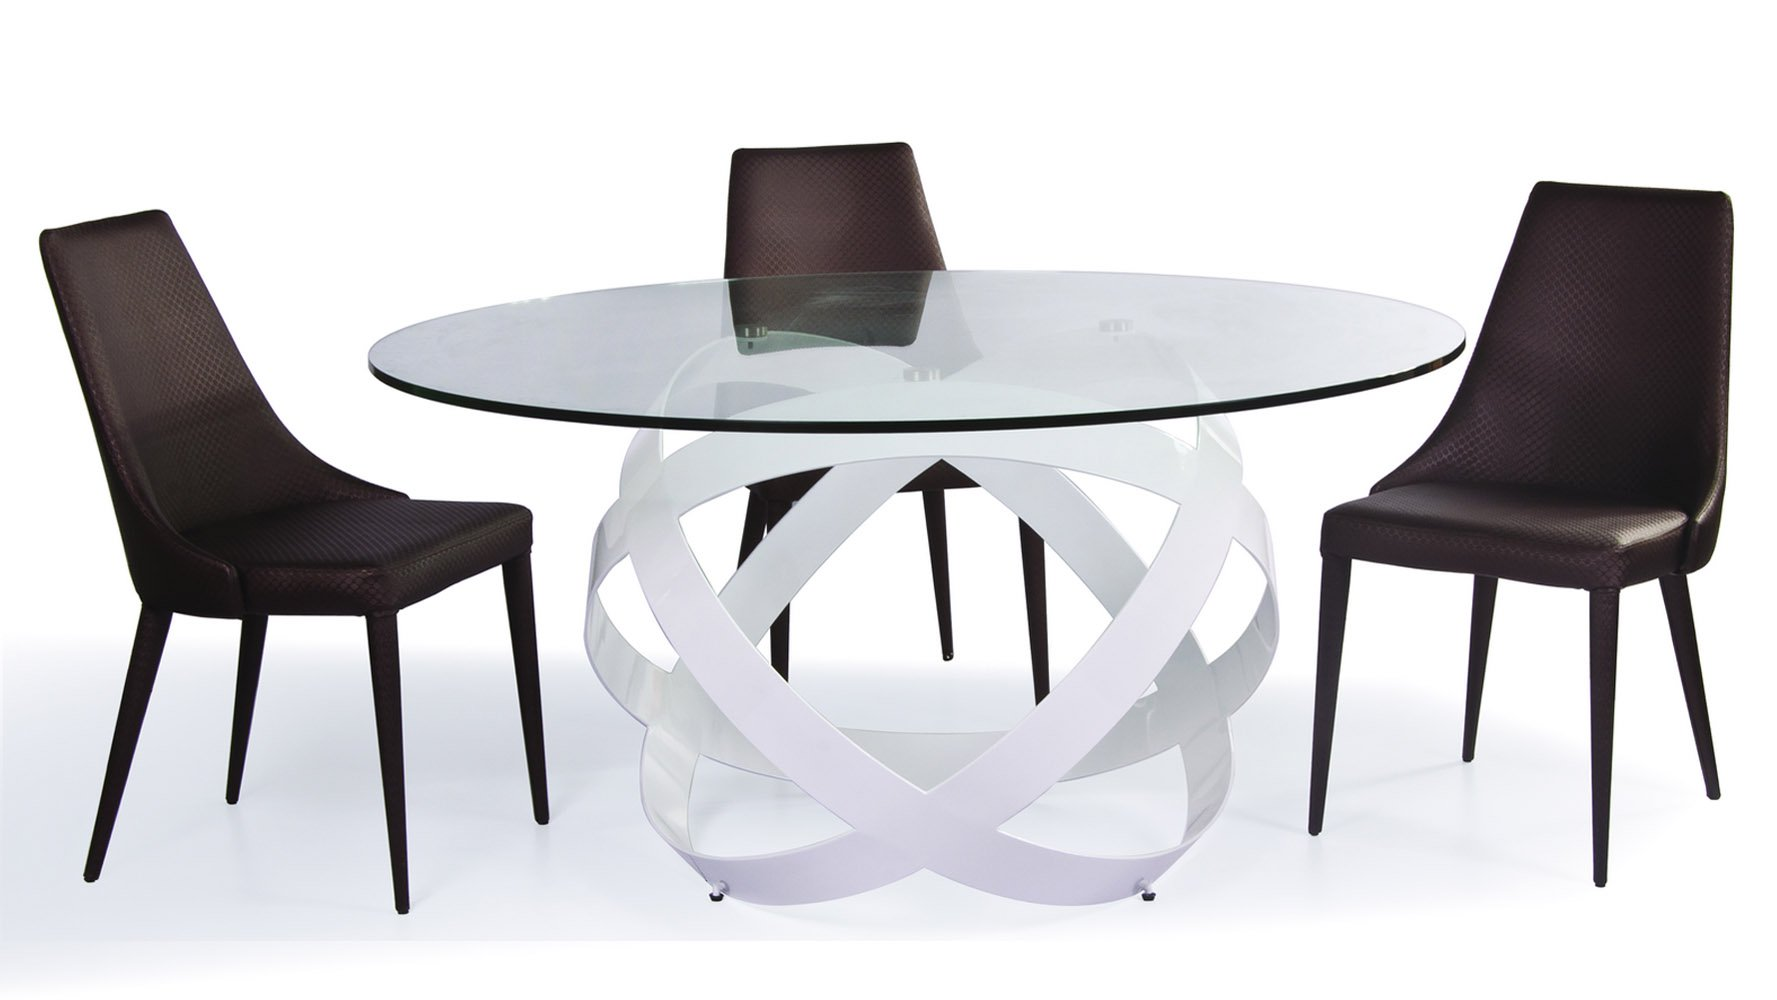 contemporary dining chairs dining room furniture, dining room tables, kitchen tables, dining chairs, OFKGWWV